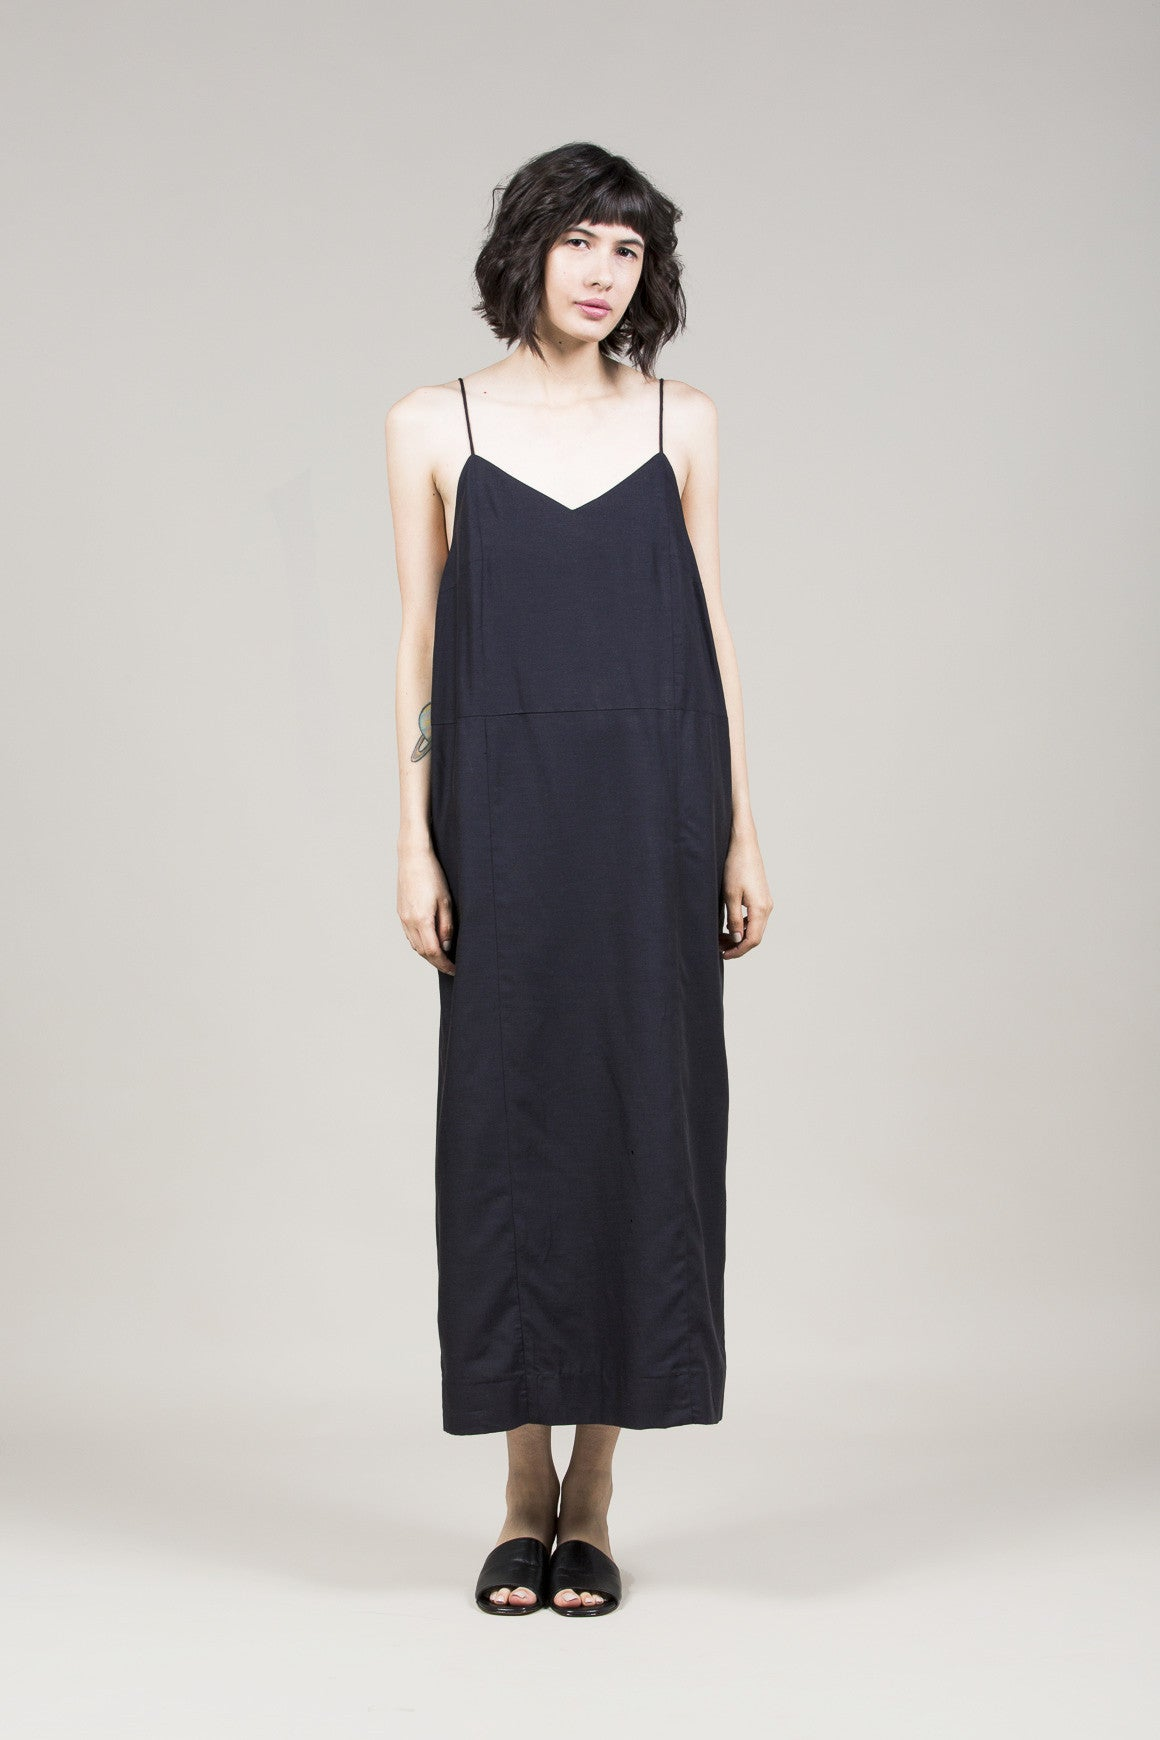 Camisole Dress by Suzanne Rae @ Kick Pleat - 1